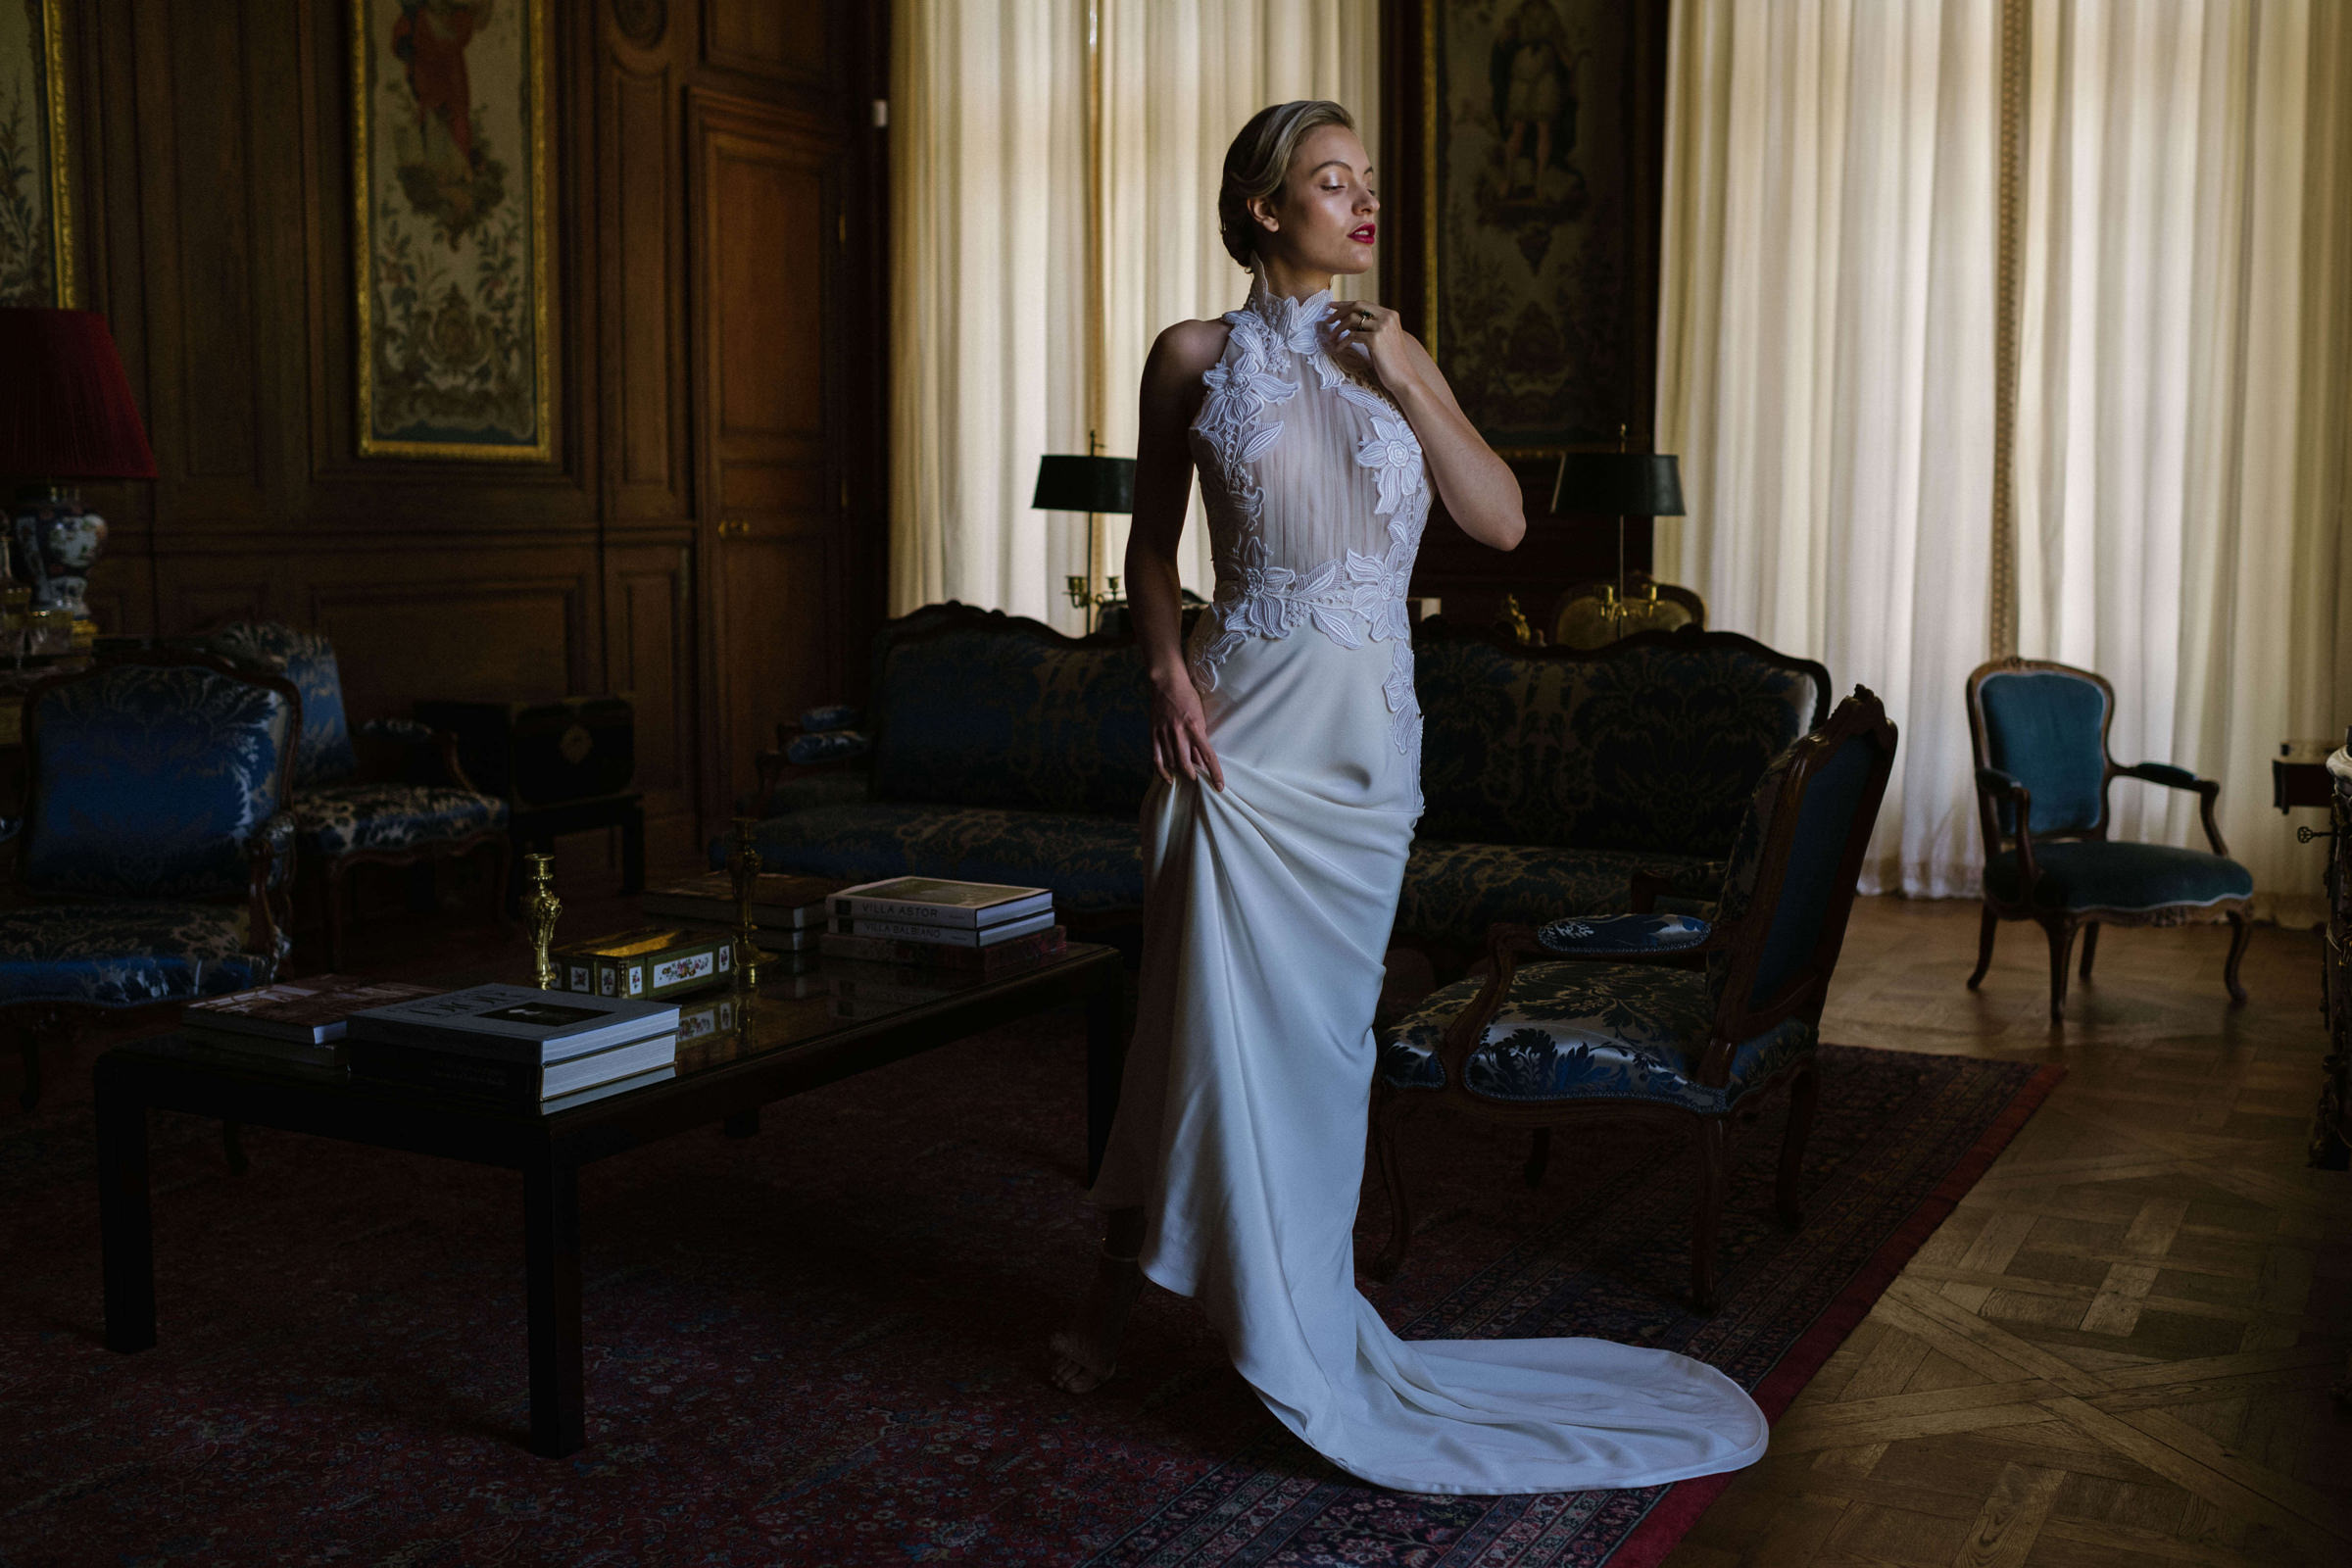 fashionable-photo-of-bride-in-crepe-gown-with-applique-bodice-by-thierry-joubert-photography